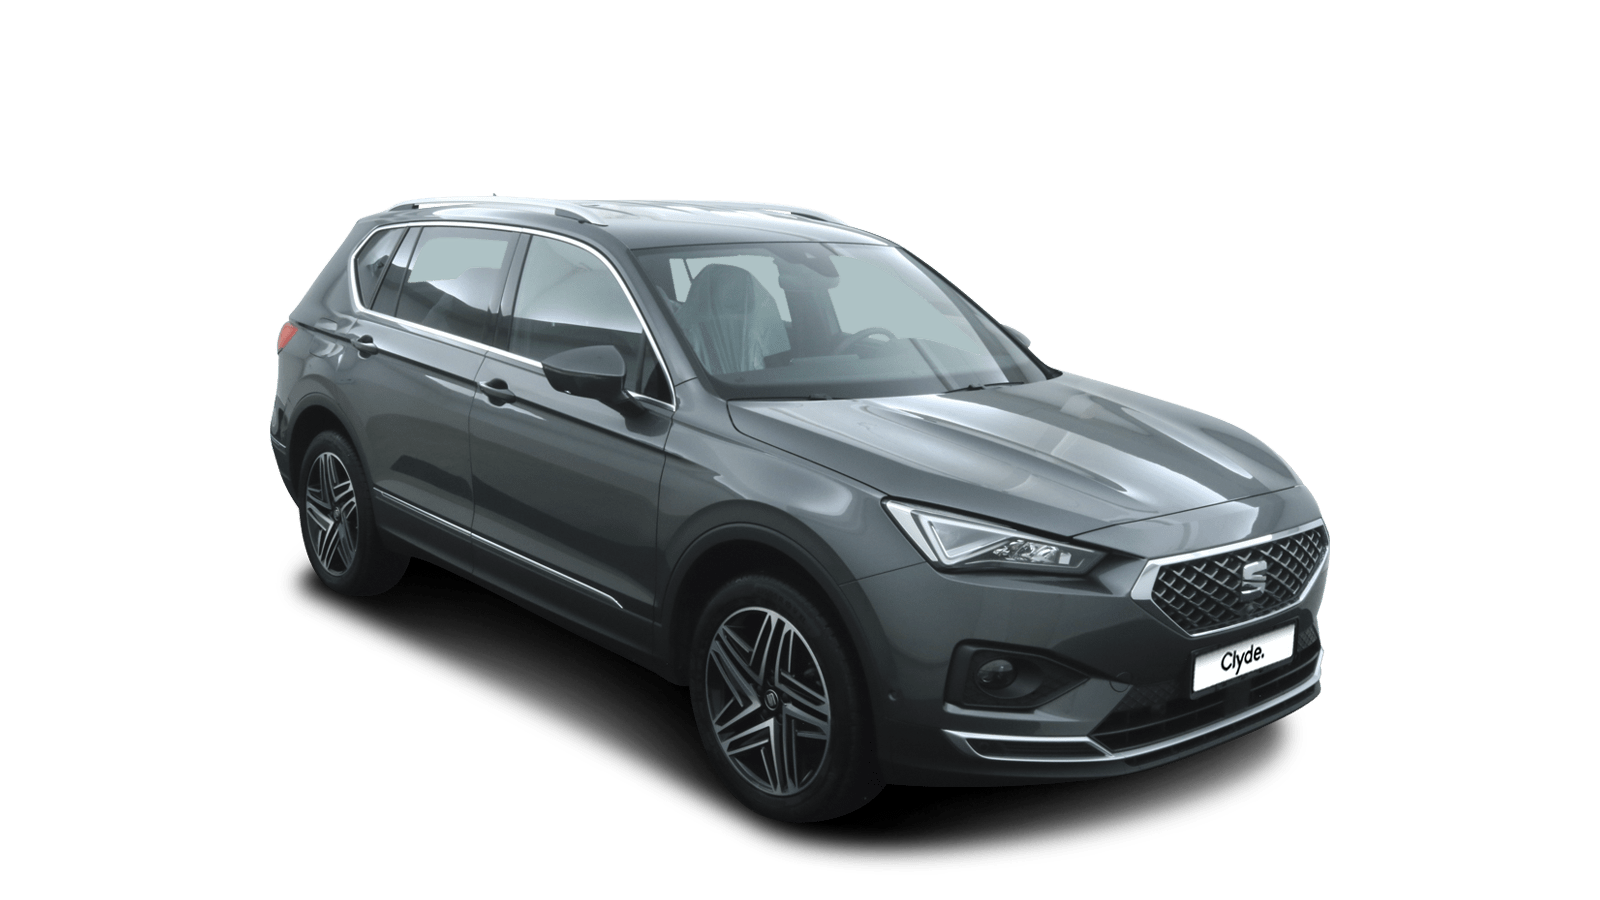 SEAT Tarraco Grau front - Clyde Auto-Abo